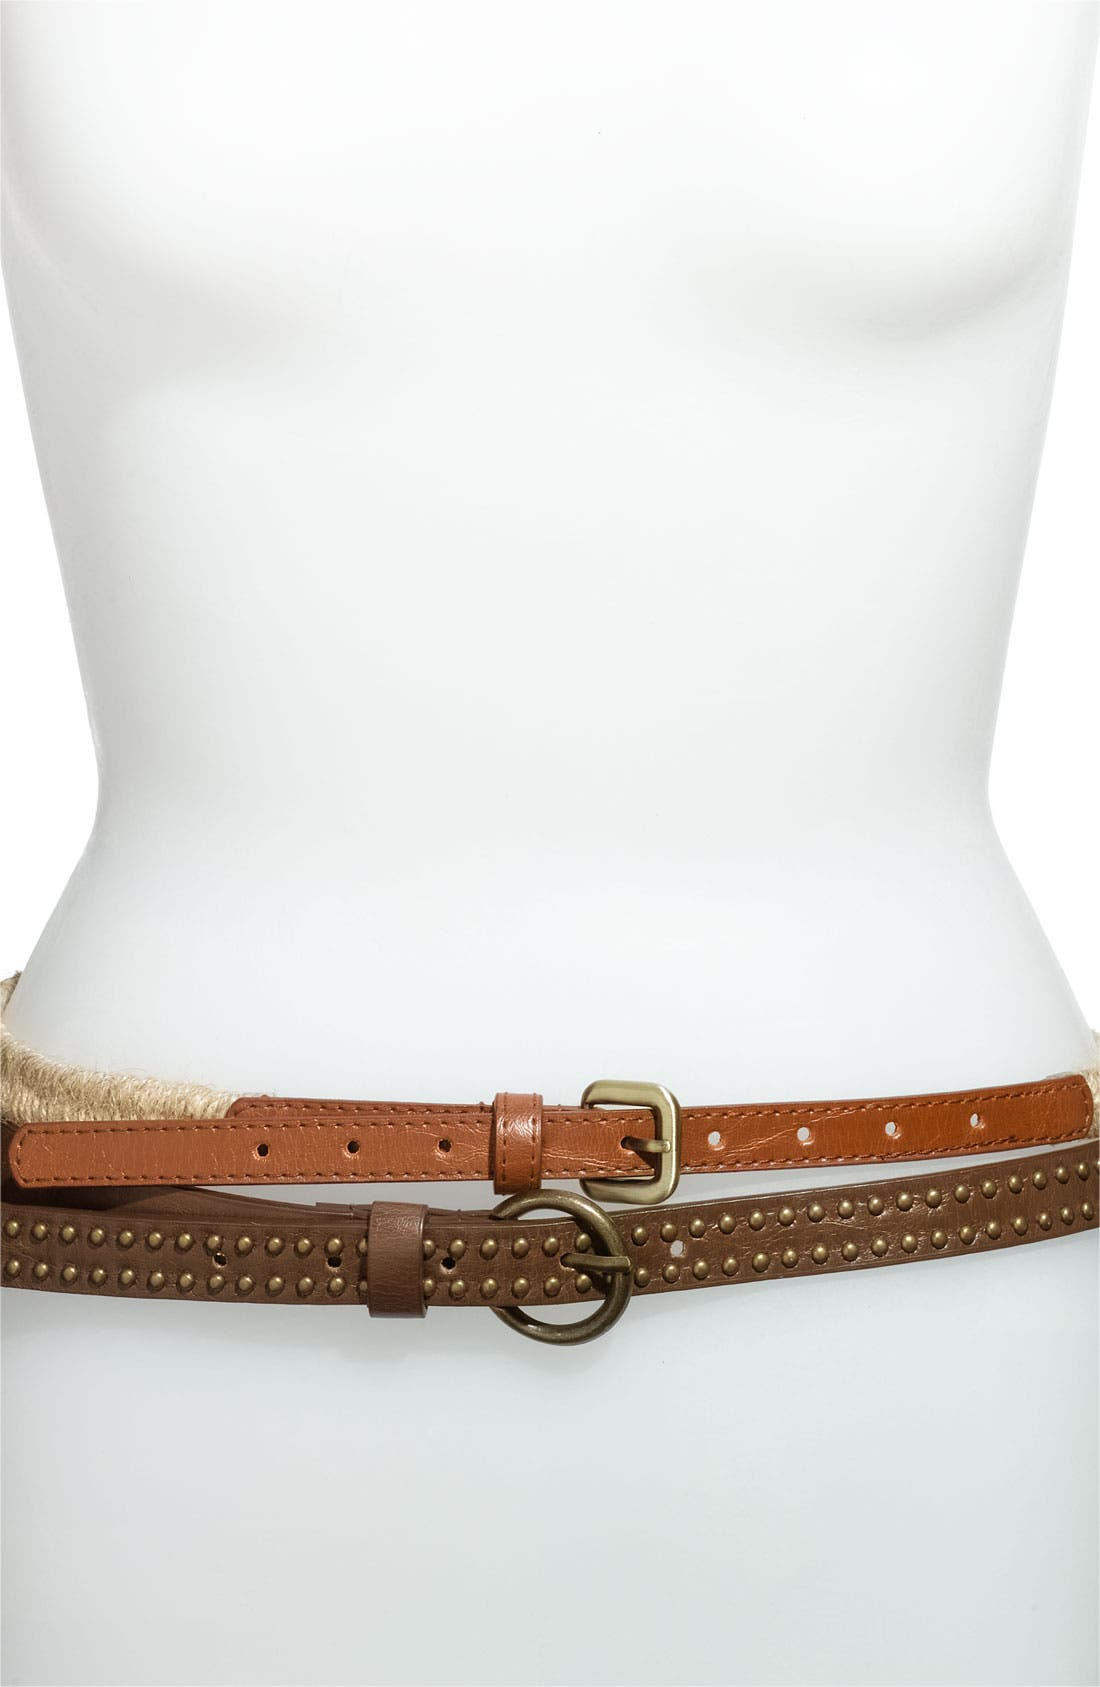 Alternate Image 1 Selected - Lulu Studded Faux Leather & Stretch Rope Belts (2-Pack)